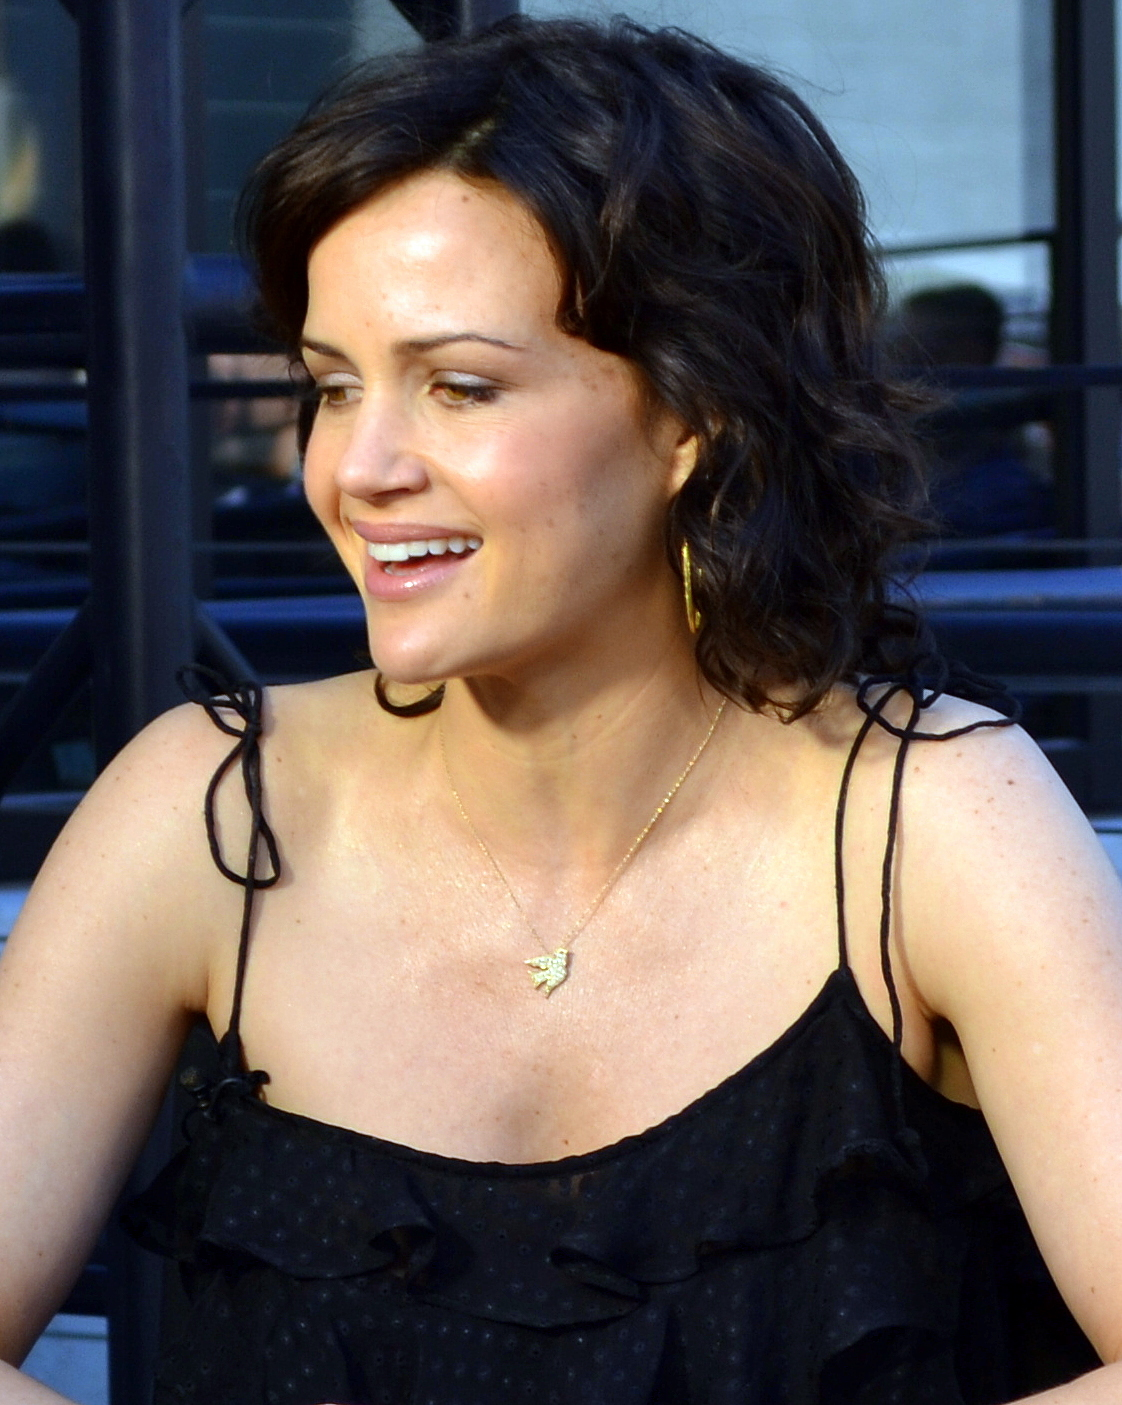 carla gugino wayward pinescarla gugino wiki, carla gugino films, carla gugino vk, carla gugino bon jovi always, carla gugino tv series, carla gugino fan, carla gugino wikipedia, carla gugino instagram, carla gugino dance, carla gugino wayward pines, carla gugino nashville, carla gugino imdb, carla gugino 2016, carla gugino кинопоиск, carla gugino jet li, carla gugino fansite, carla gugino de niro, carla gugino and robert de niro, carla gugino is she married, carla gugino family